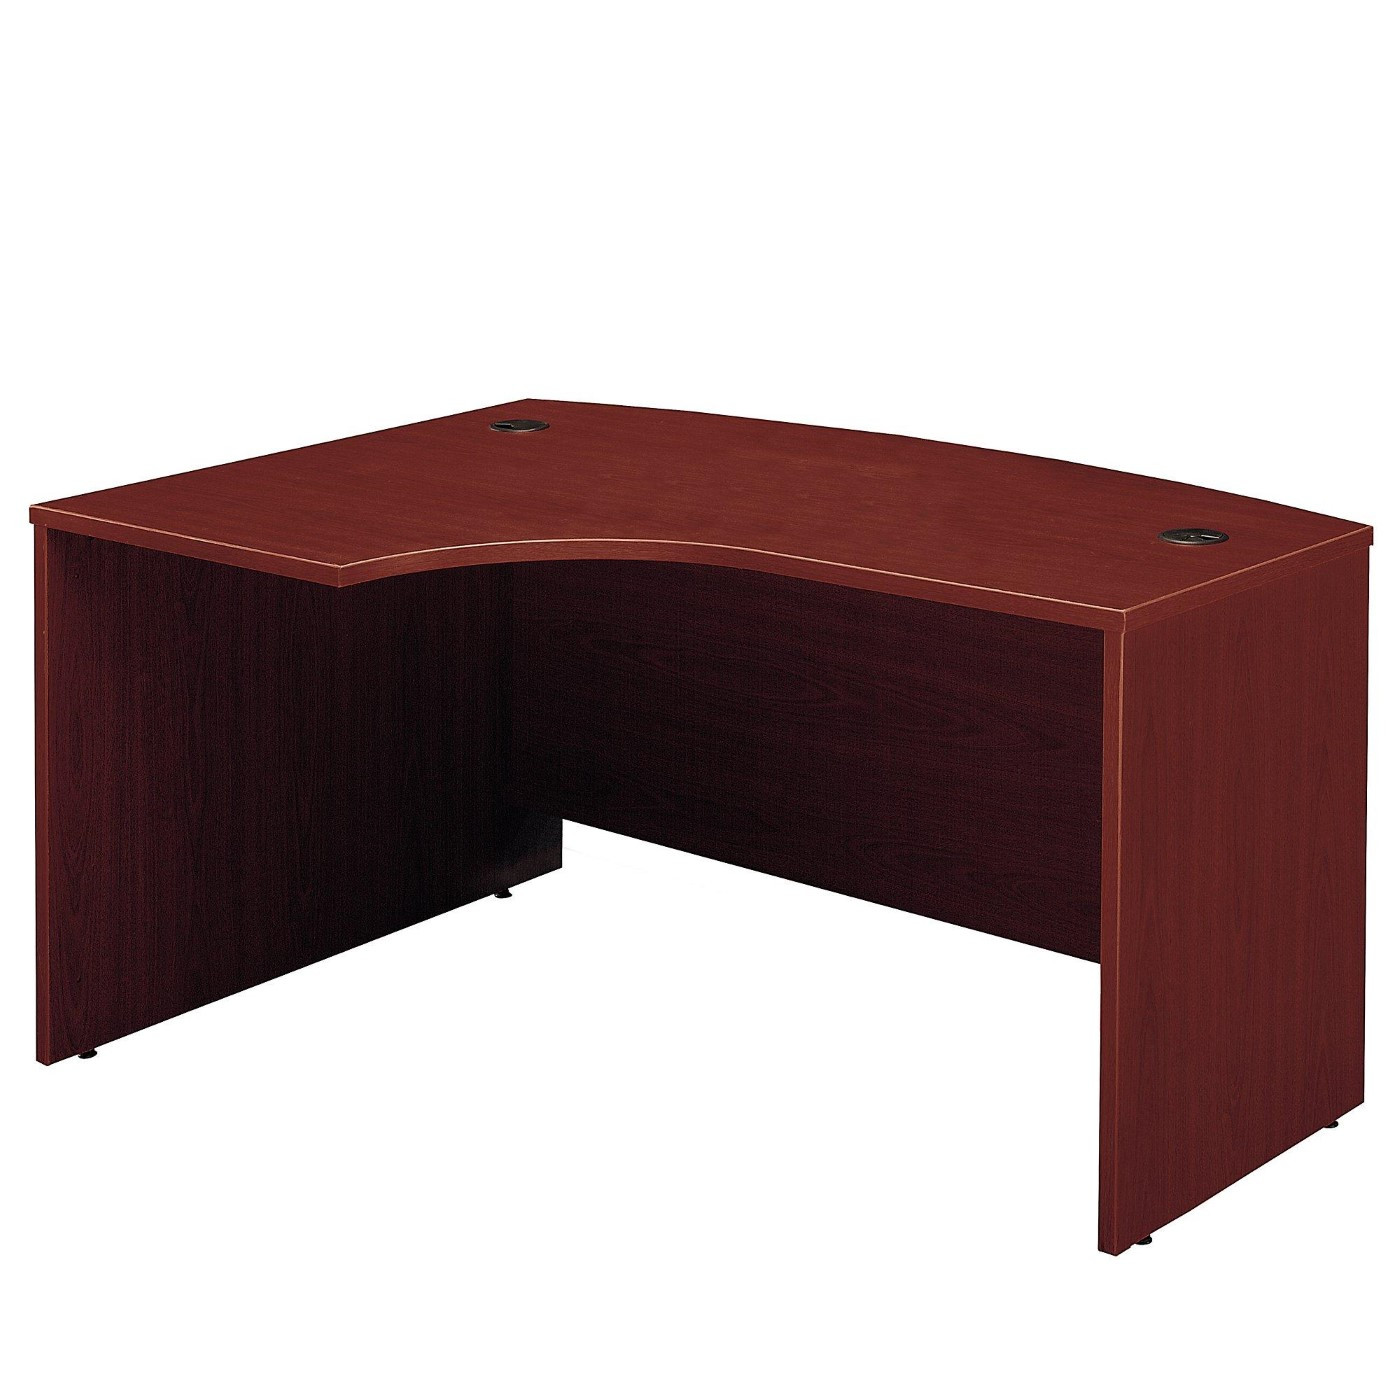 BUSH BUSINESS FURNITURE SERIES C 60W X 43D RIGHT HANDED L BOW DESK. FREE SHIPPING</font></b></font></b>&#x1F384<font color=red><b>ERGONOMICHOME HOLIDAY SALE - ENDS DEC. 17, 2019</b></font>&#x1F384